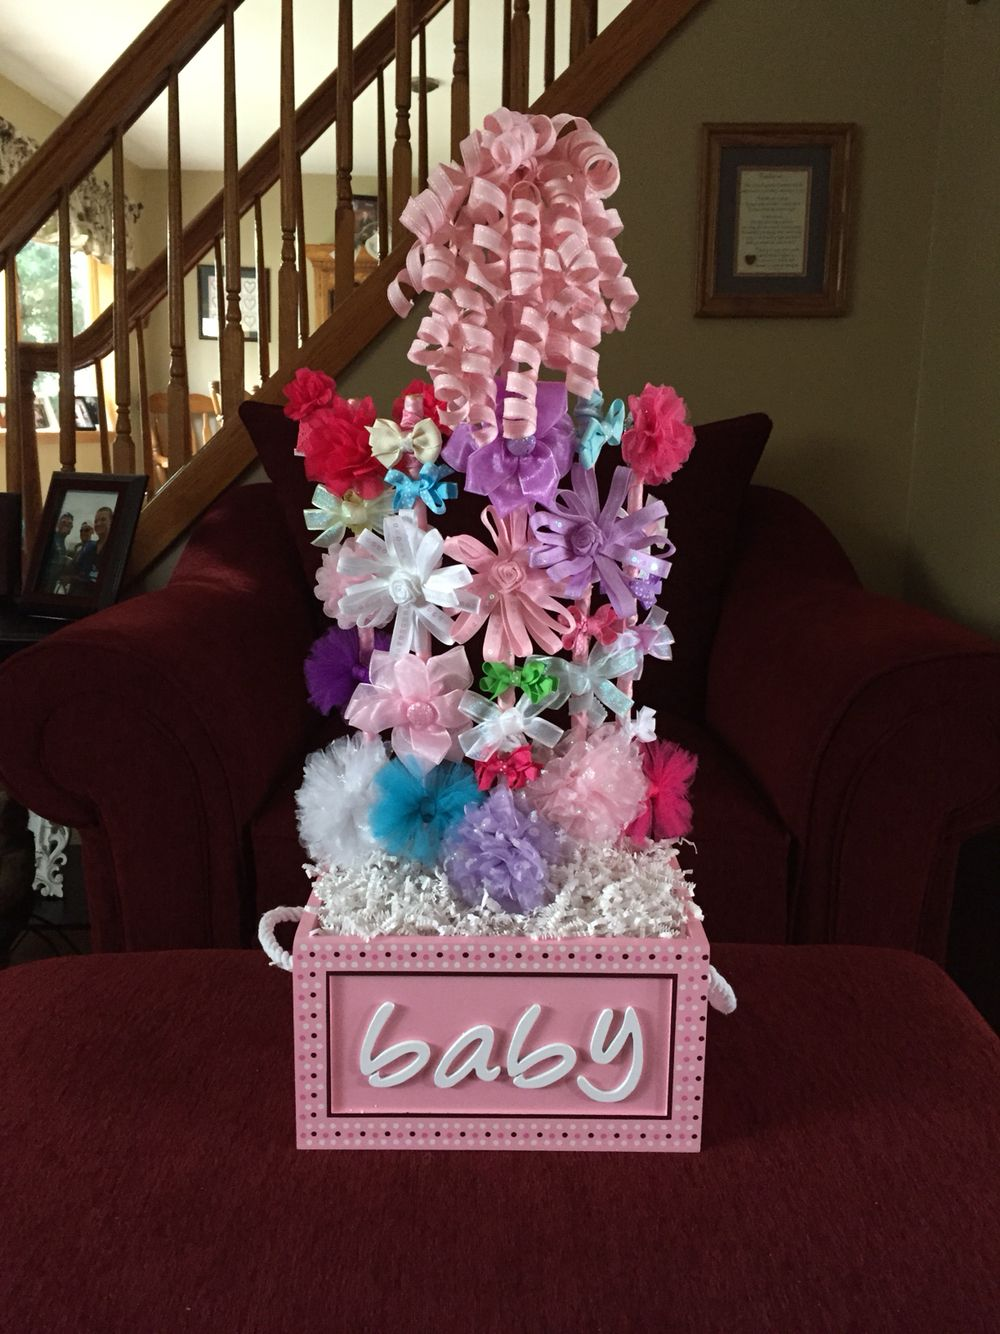 Baby shower gift, a bow bouquet.